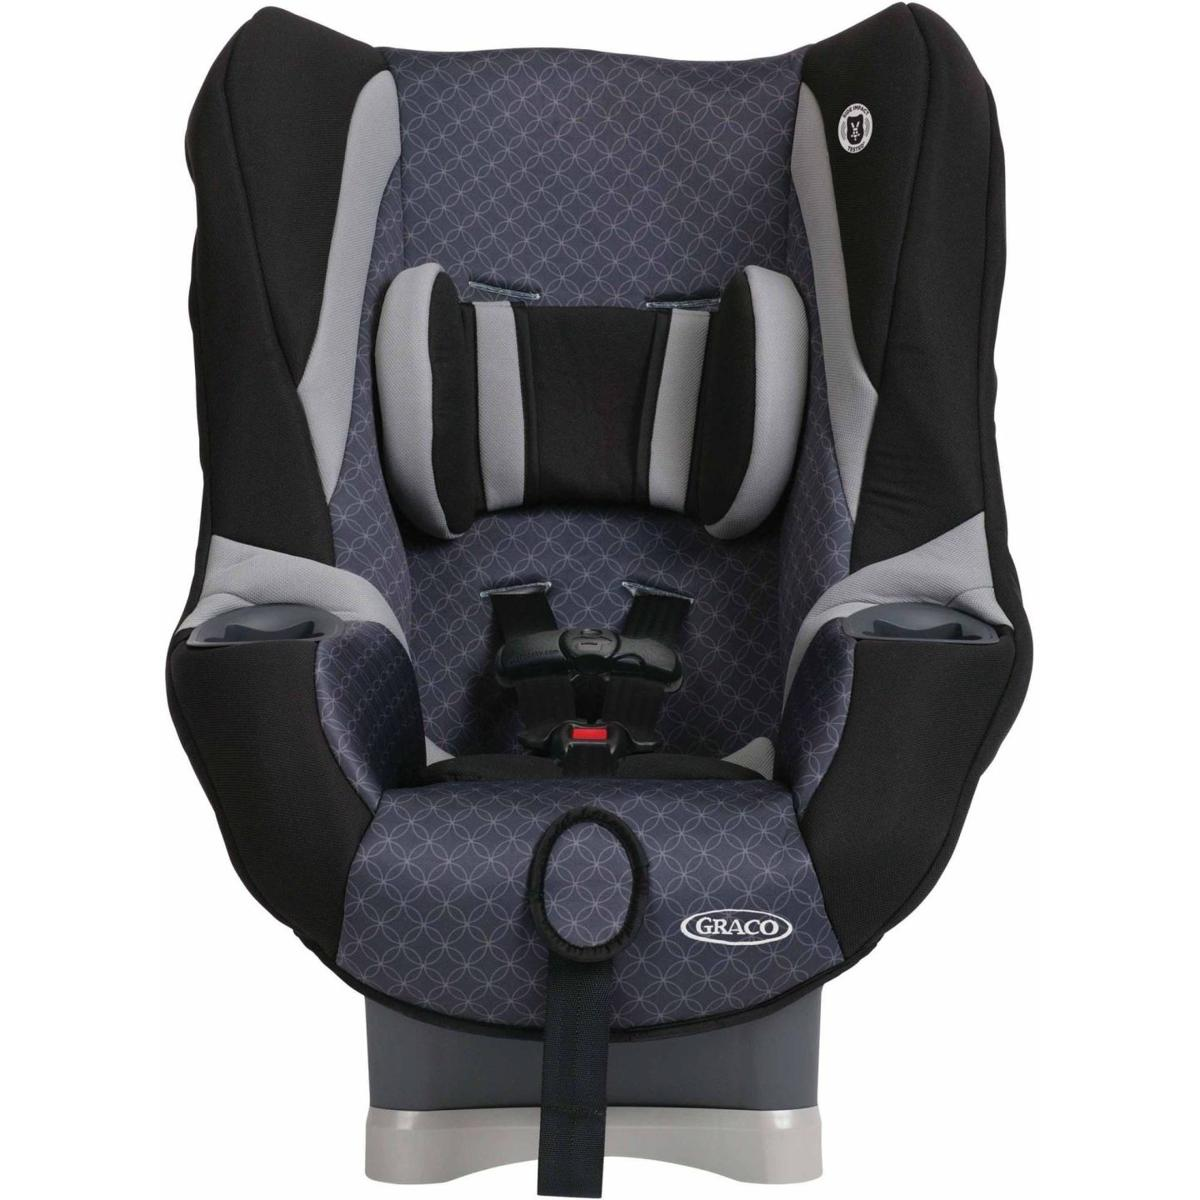 Graco Recalls Car Seats; Webbing May Not Hold Child In